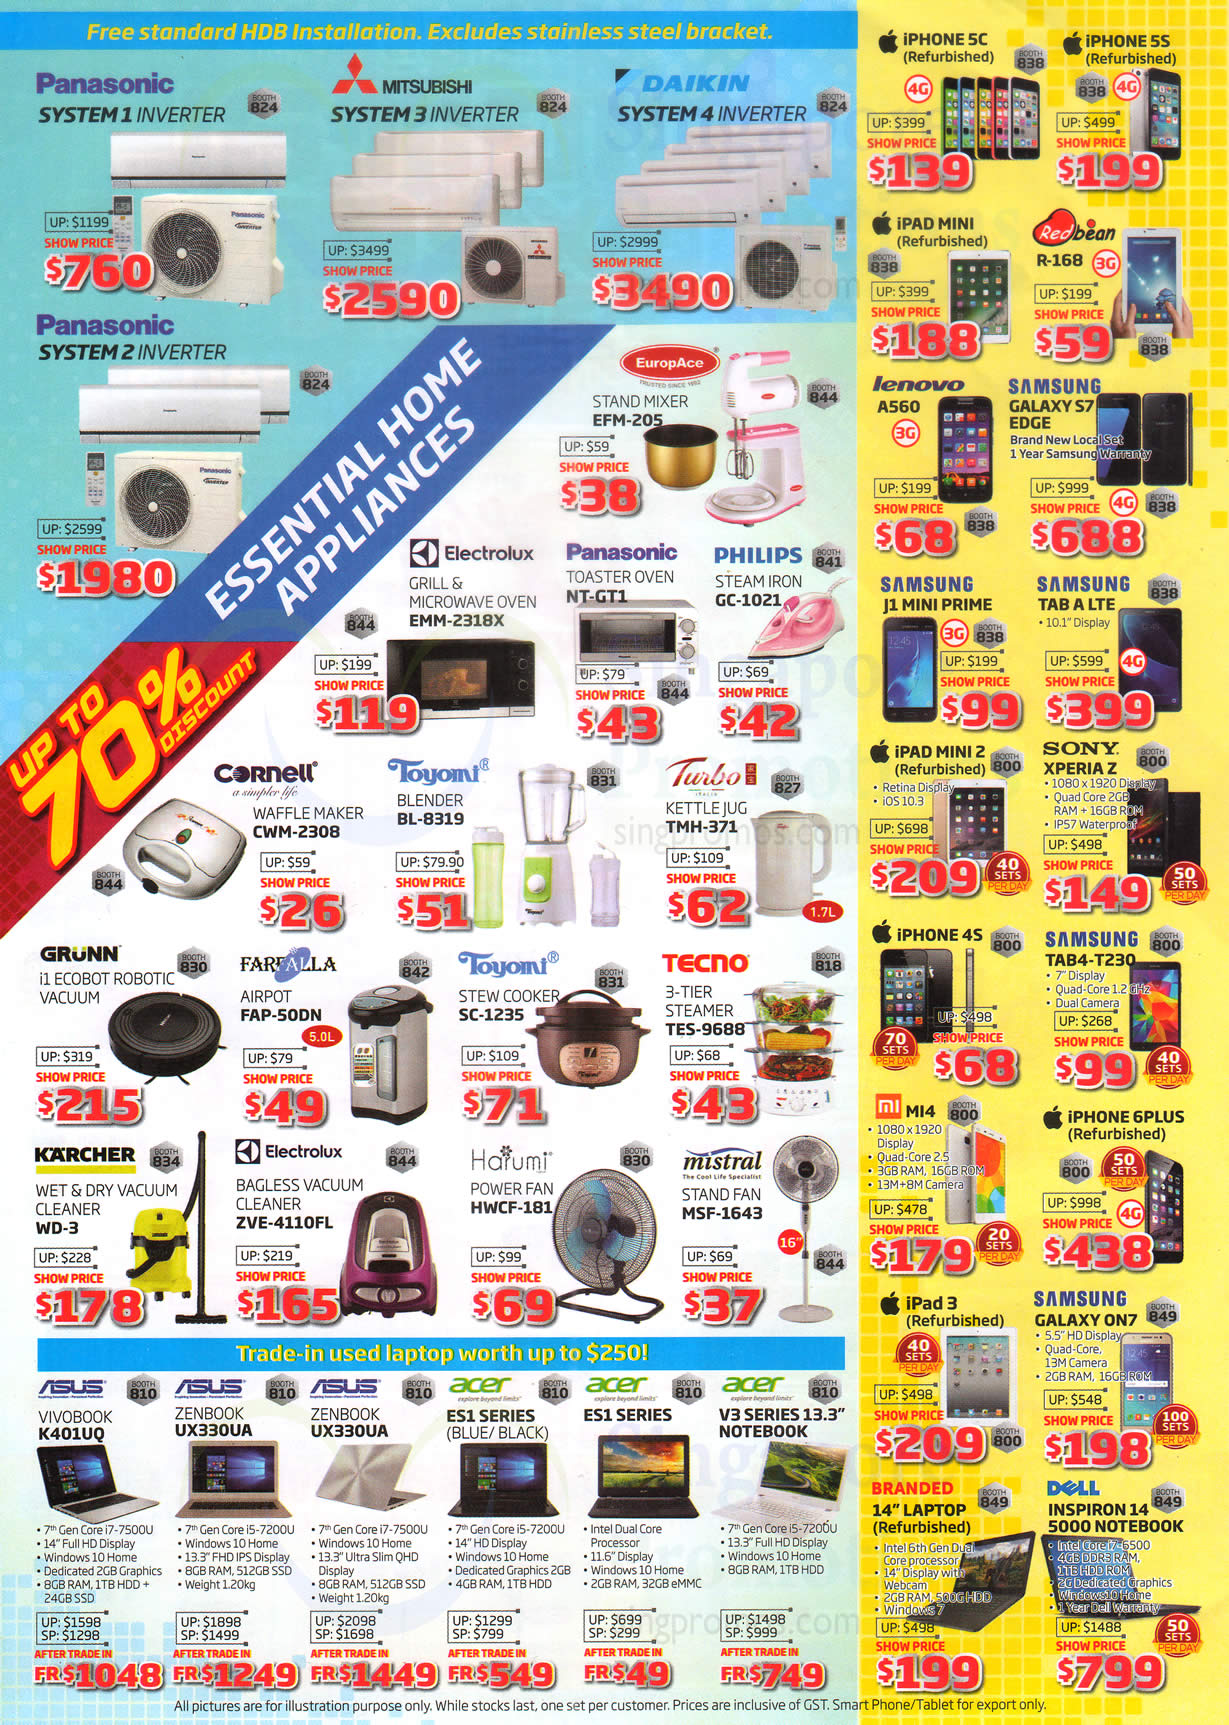 Digital Expo Small Appliances, Mobiles, Air Conditioners, Notebooks 15 Apr 2017